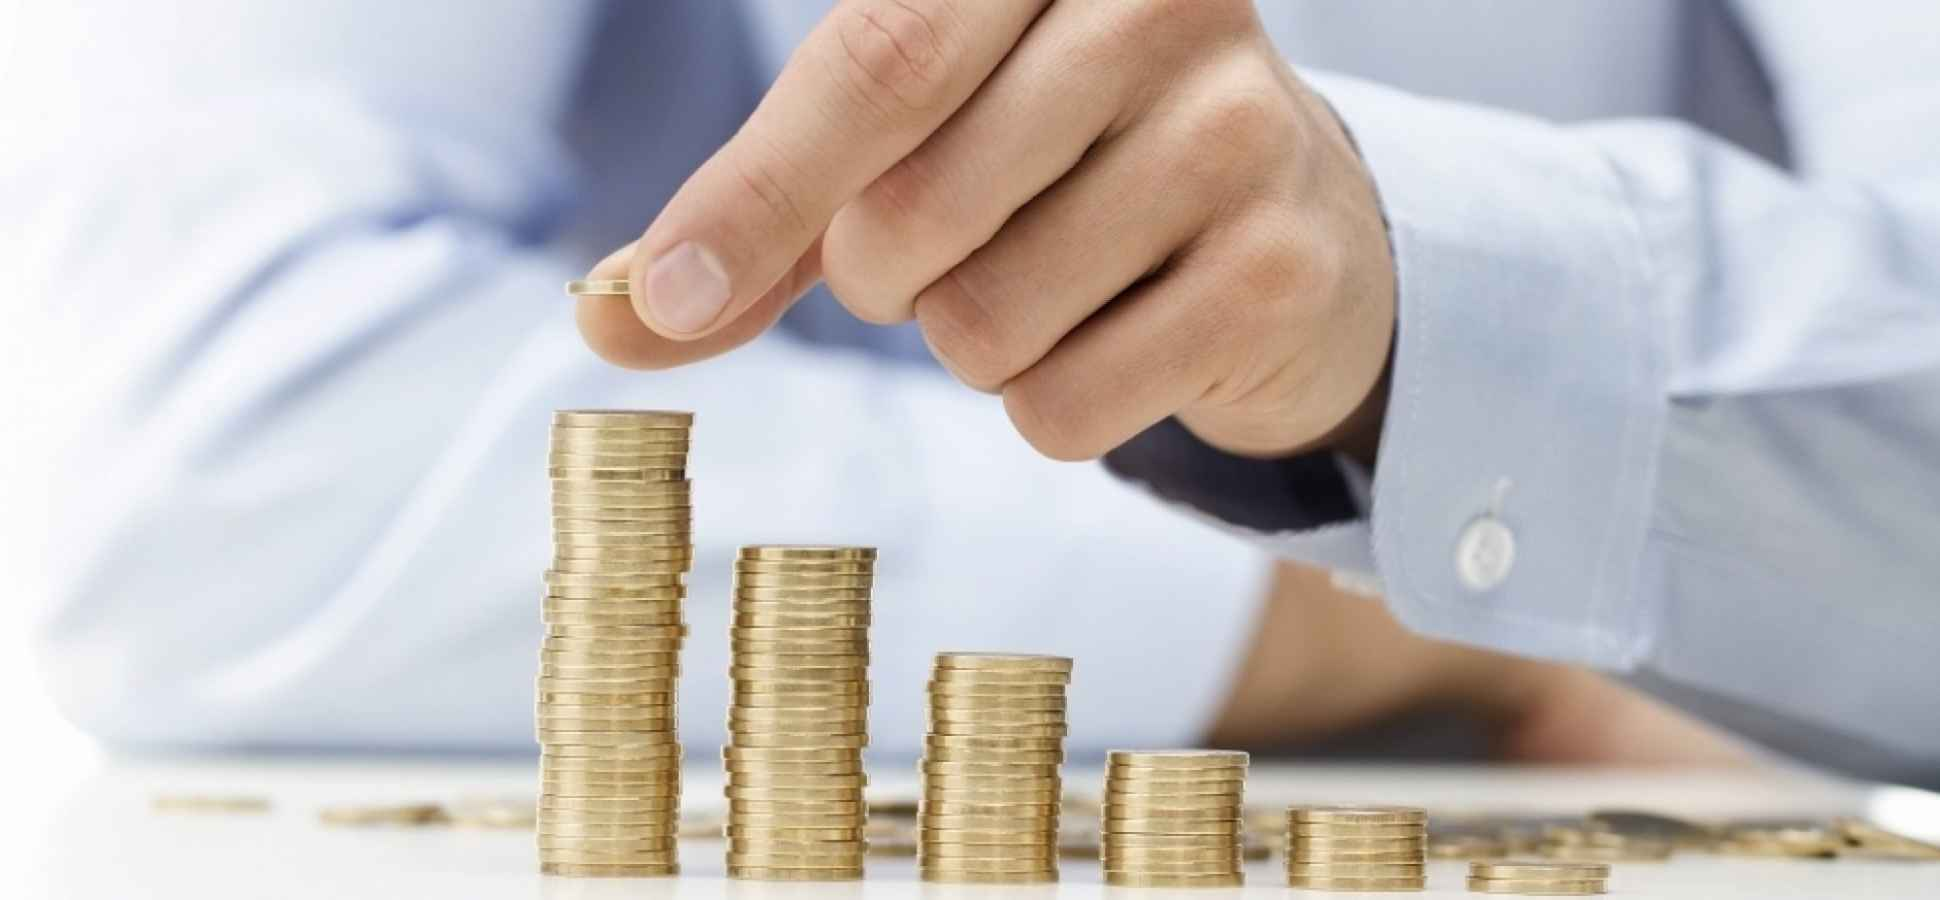 7 Funding Options for Accelerating Startup Growth